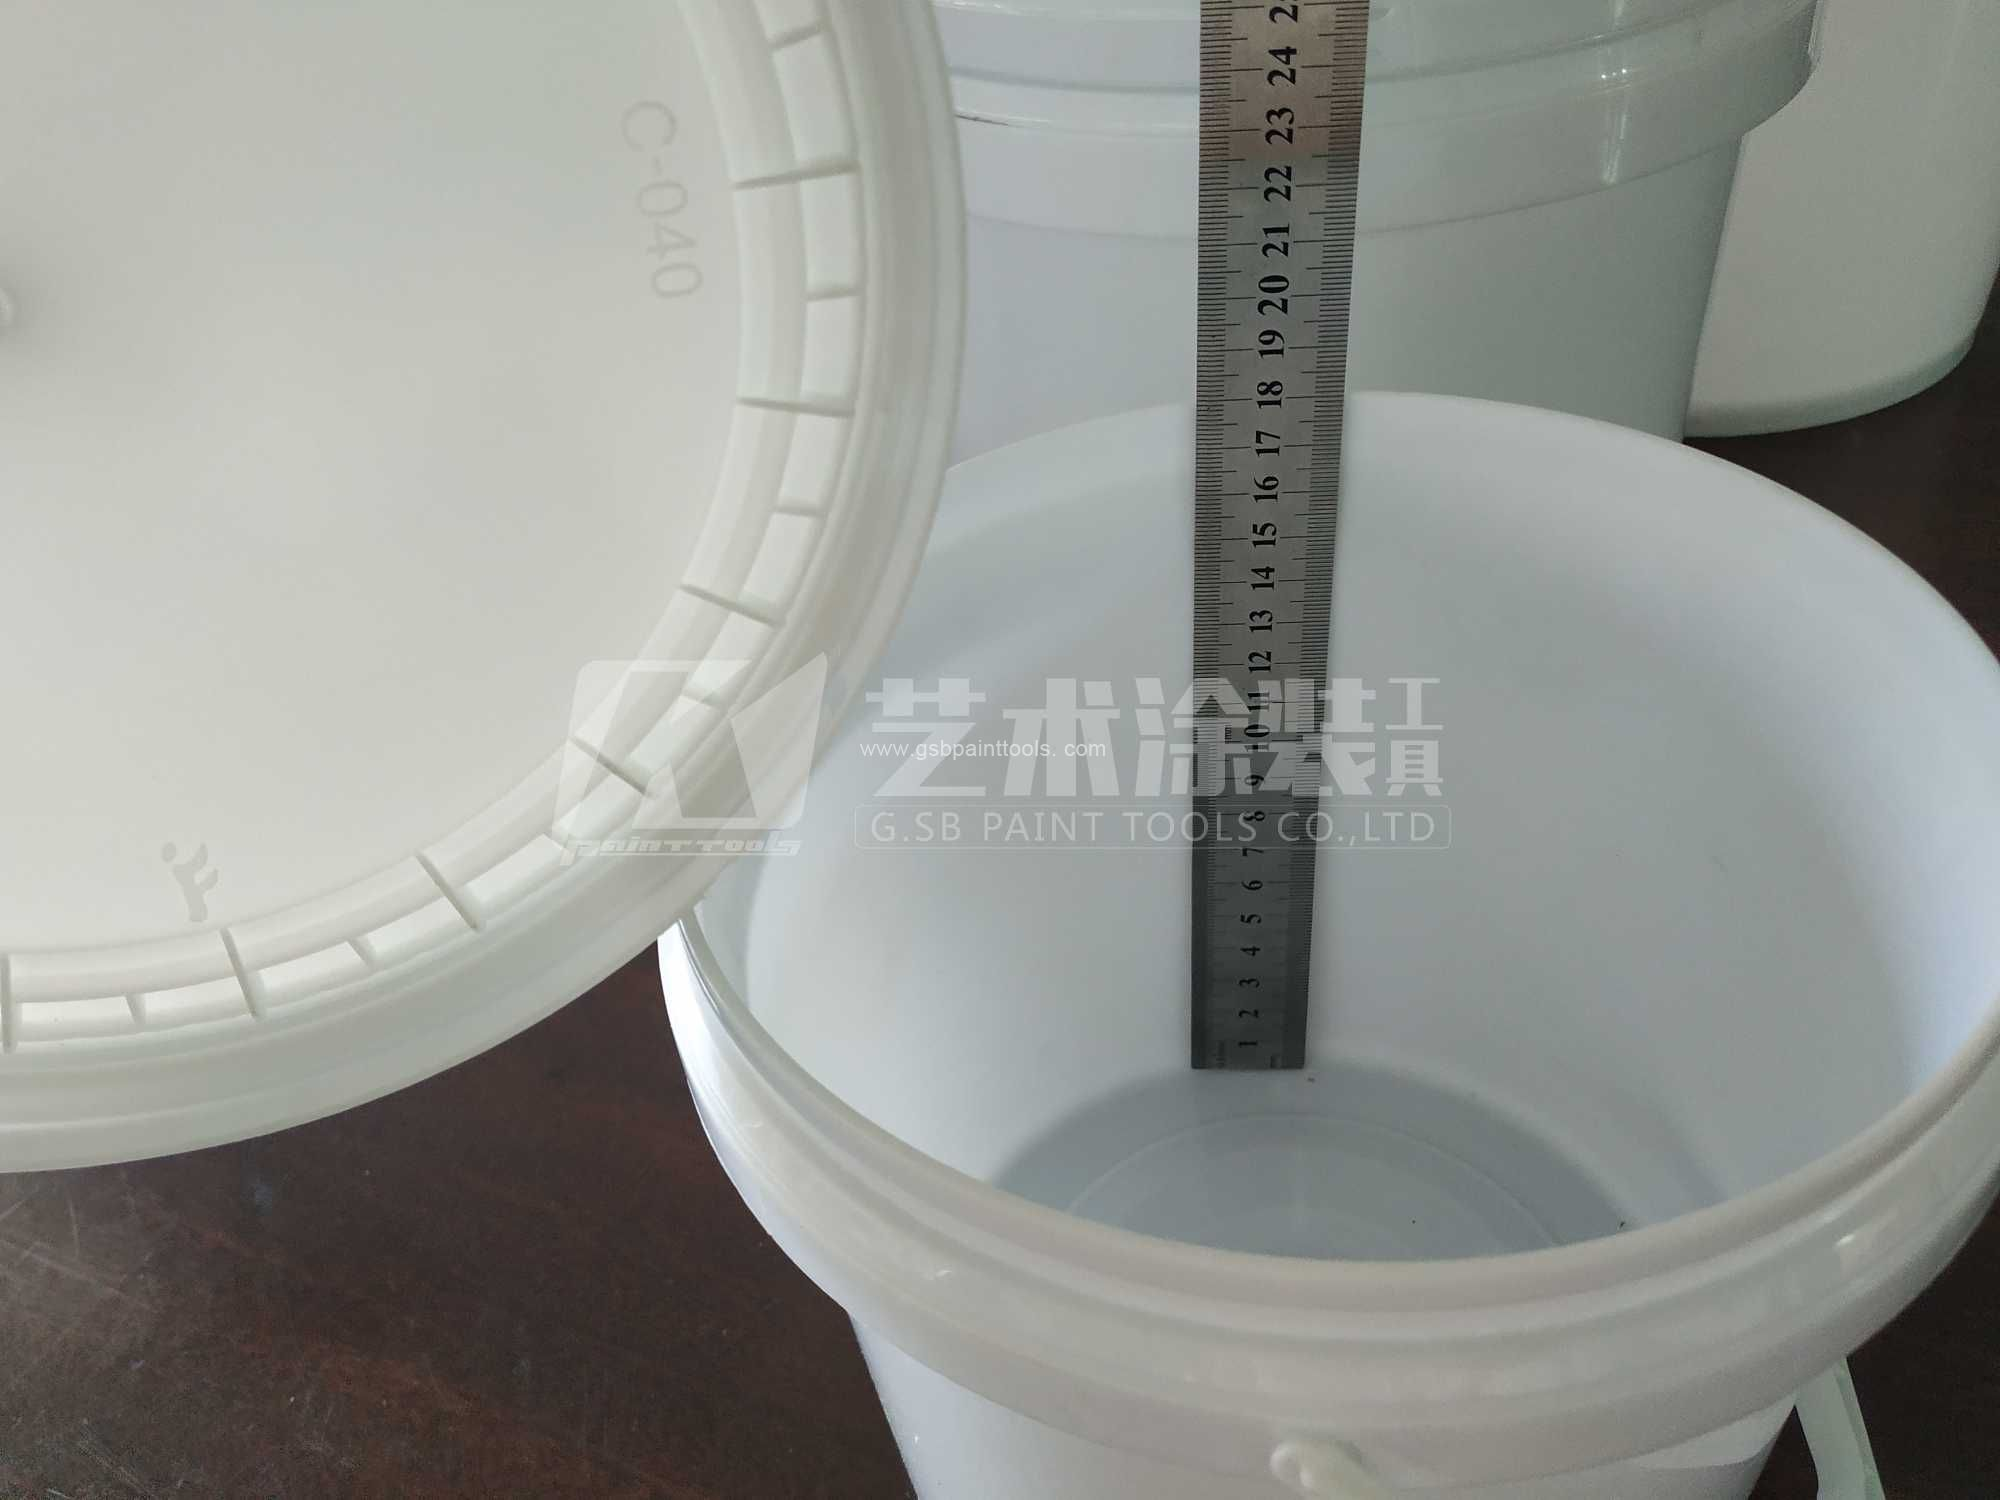 paint-barrel-PP-material-with-handle-customized-paint-bucket